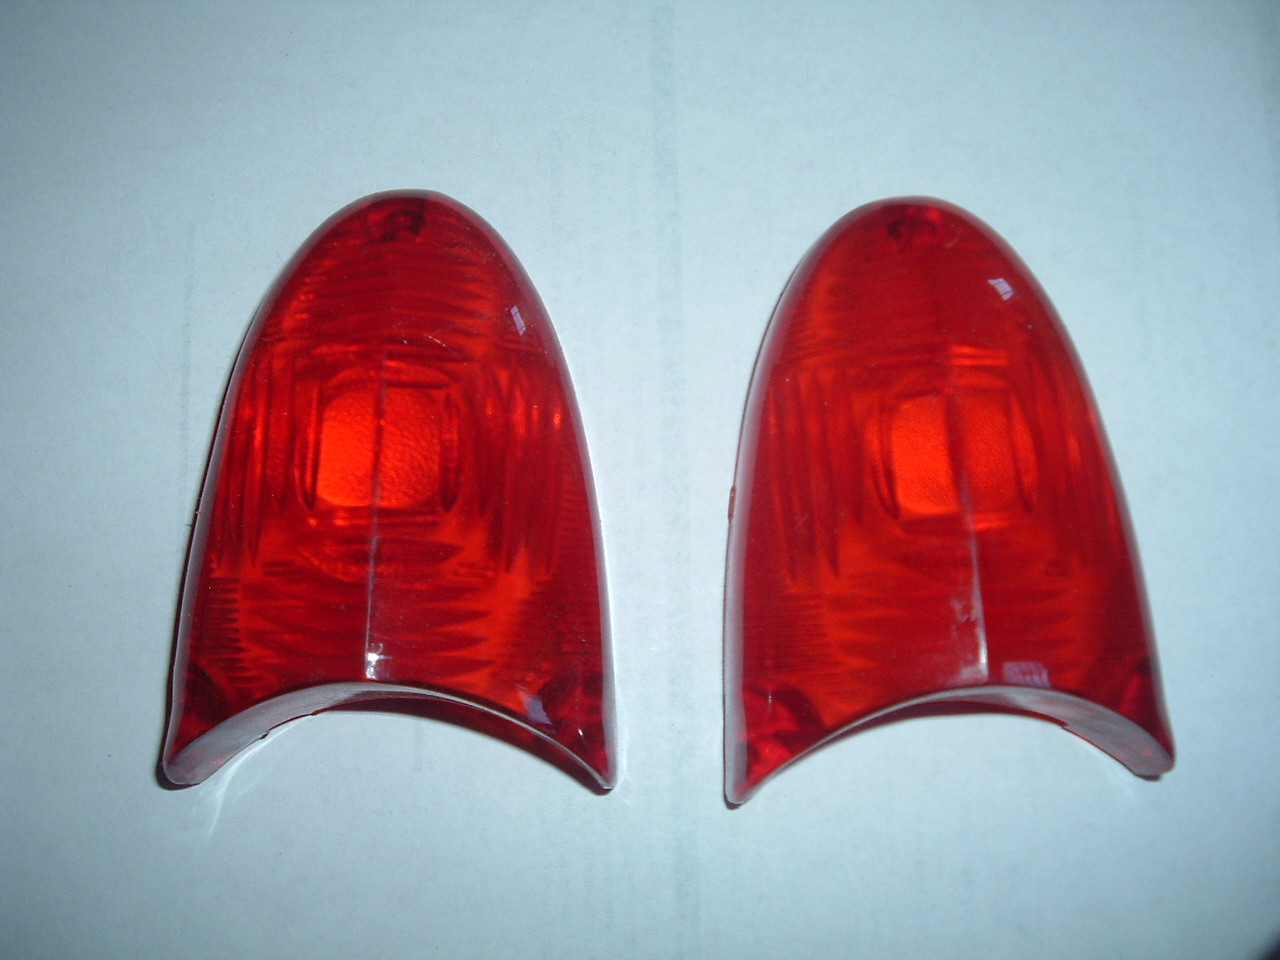 1954 plymouth taillight lens # 1546438 (z 1546438)